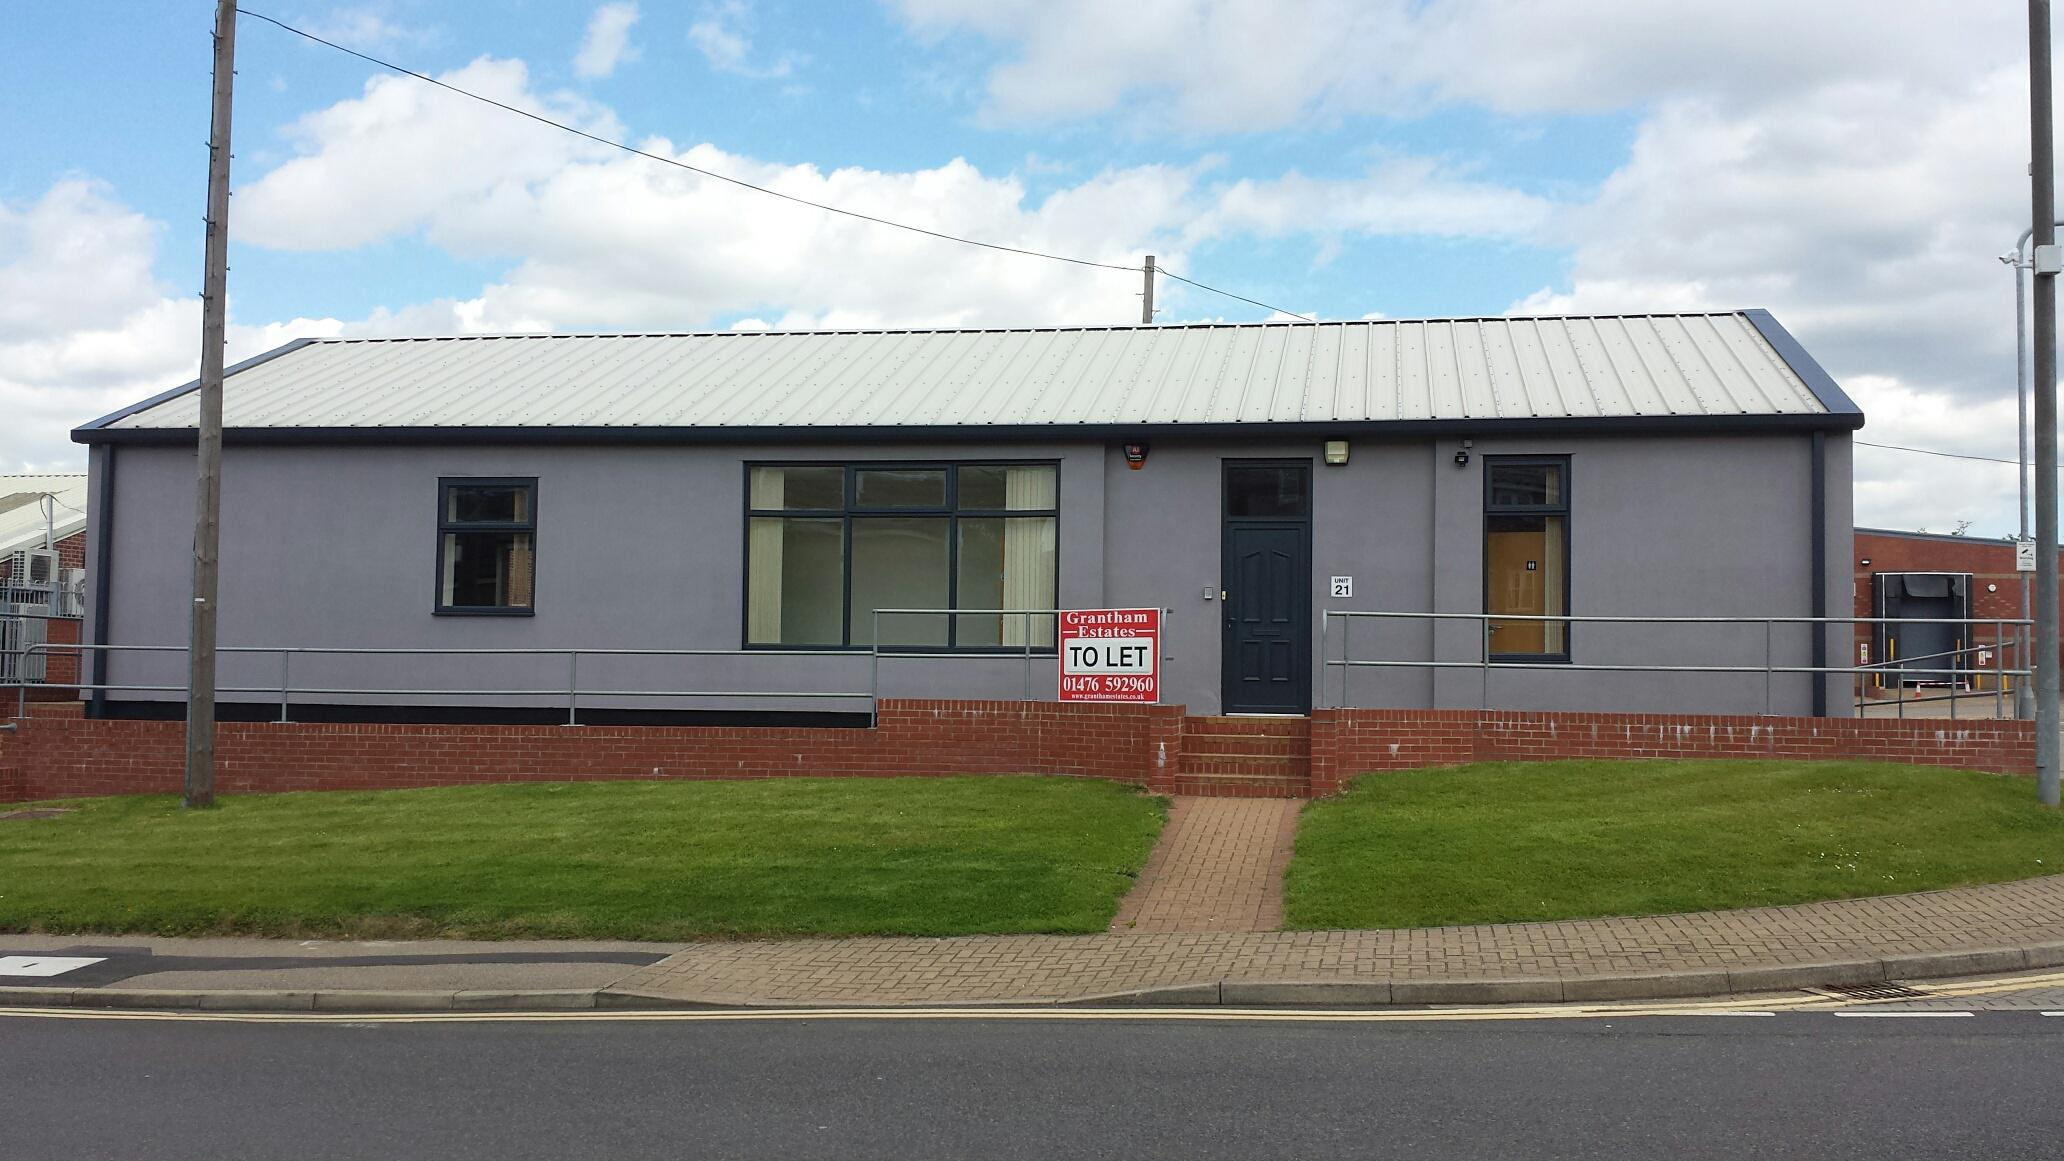 Unit 21, Springfield Business Park, Caunt Road, Grantham, Lincs, NG31 7FZ